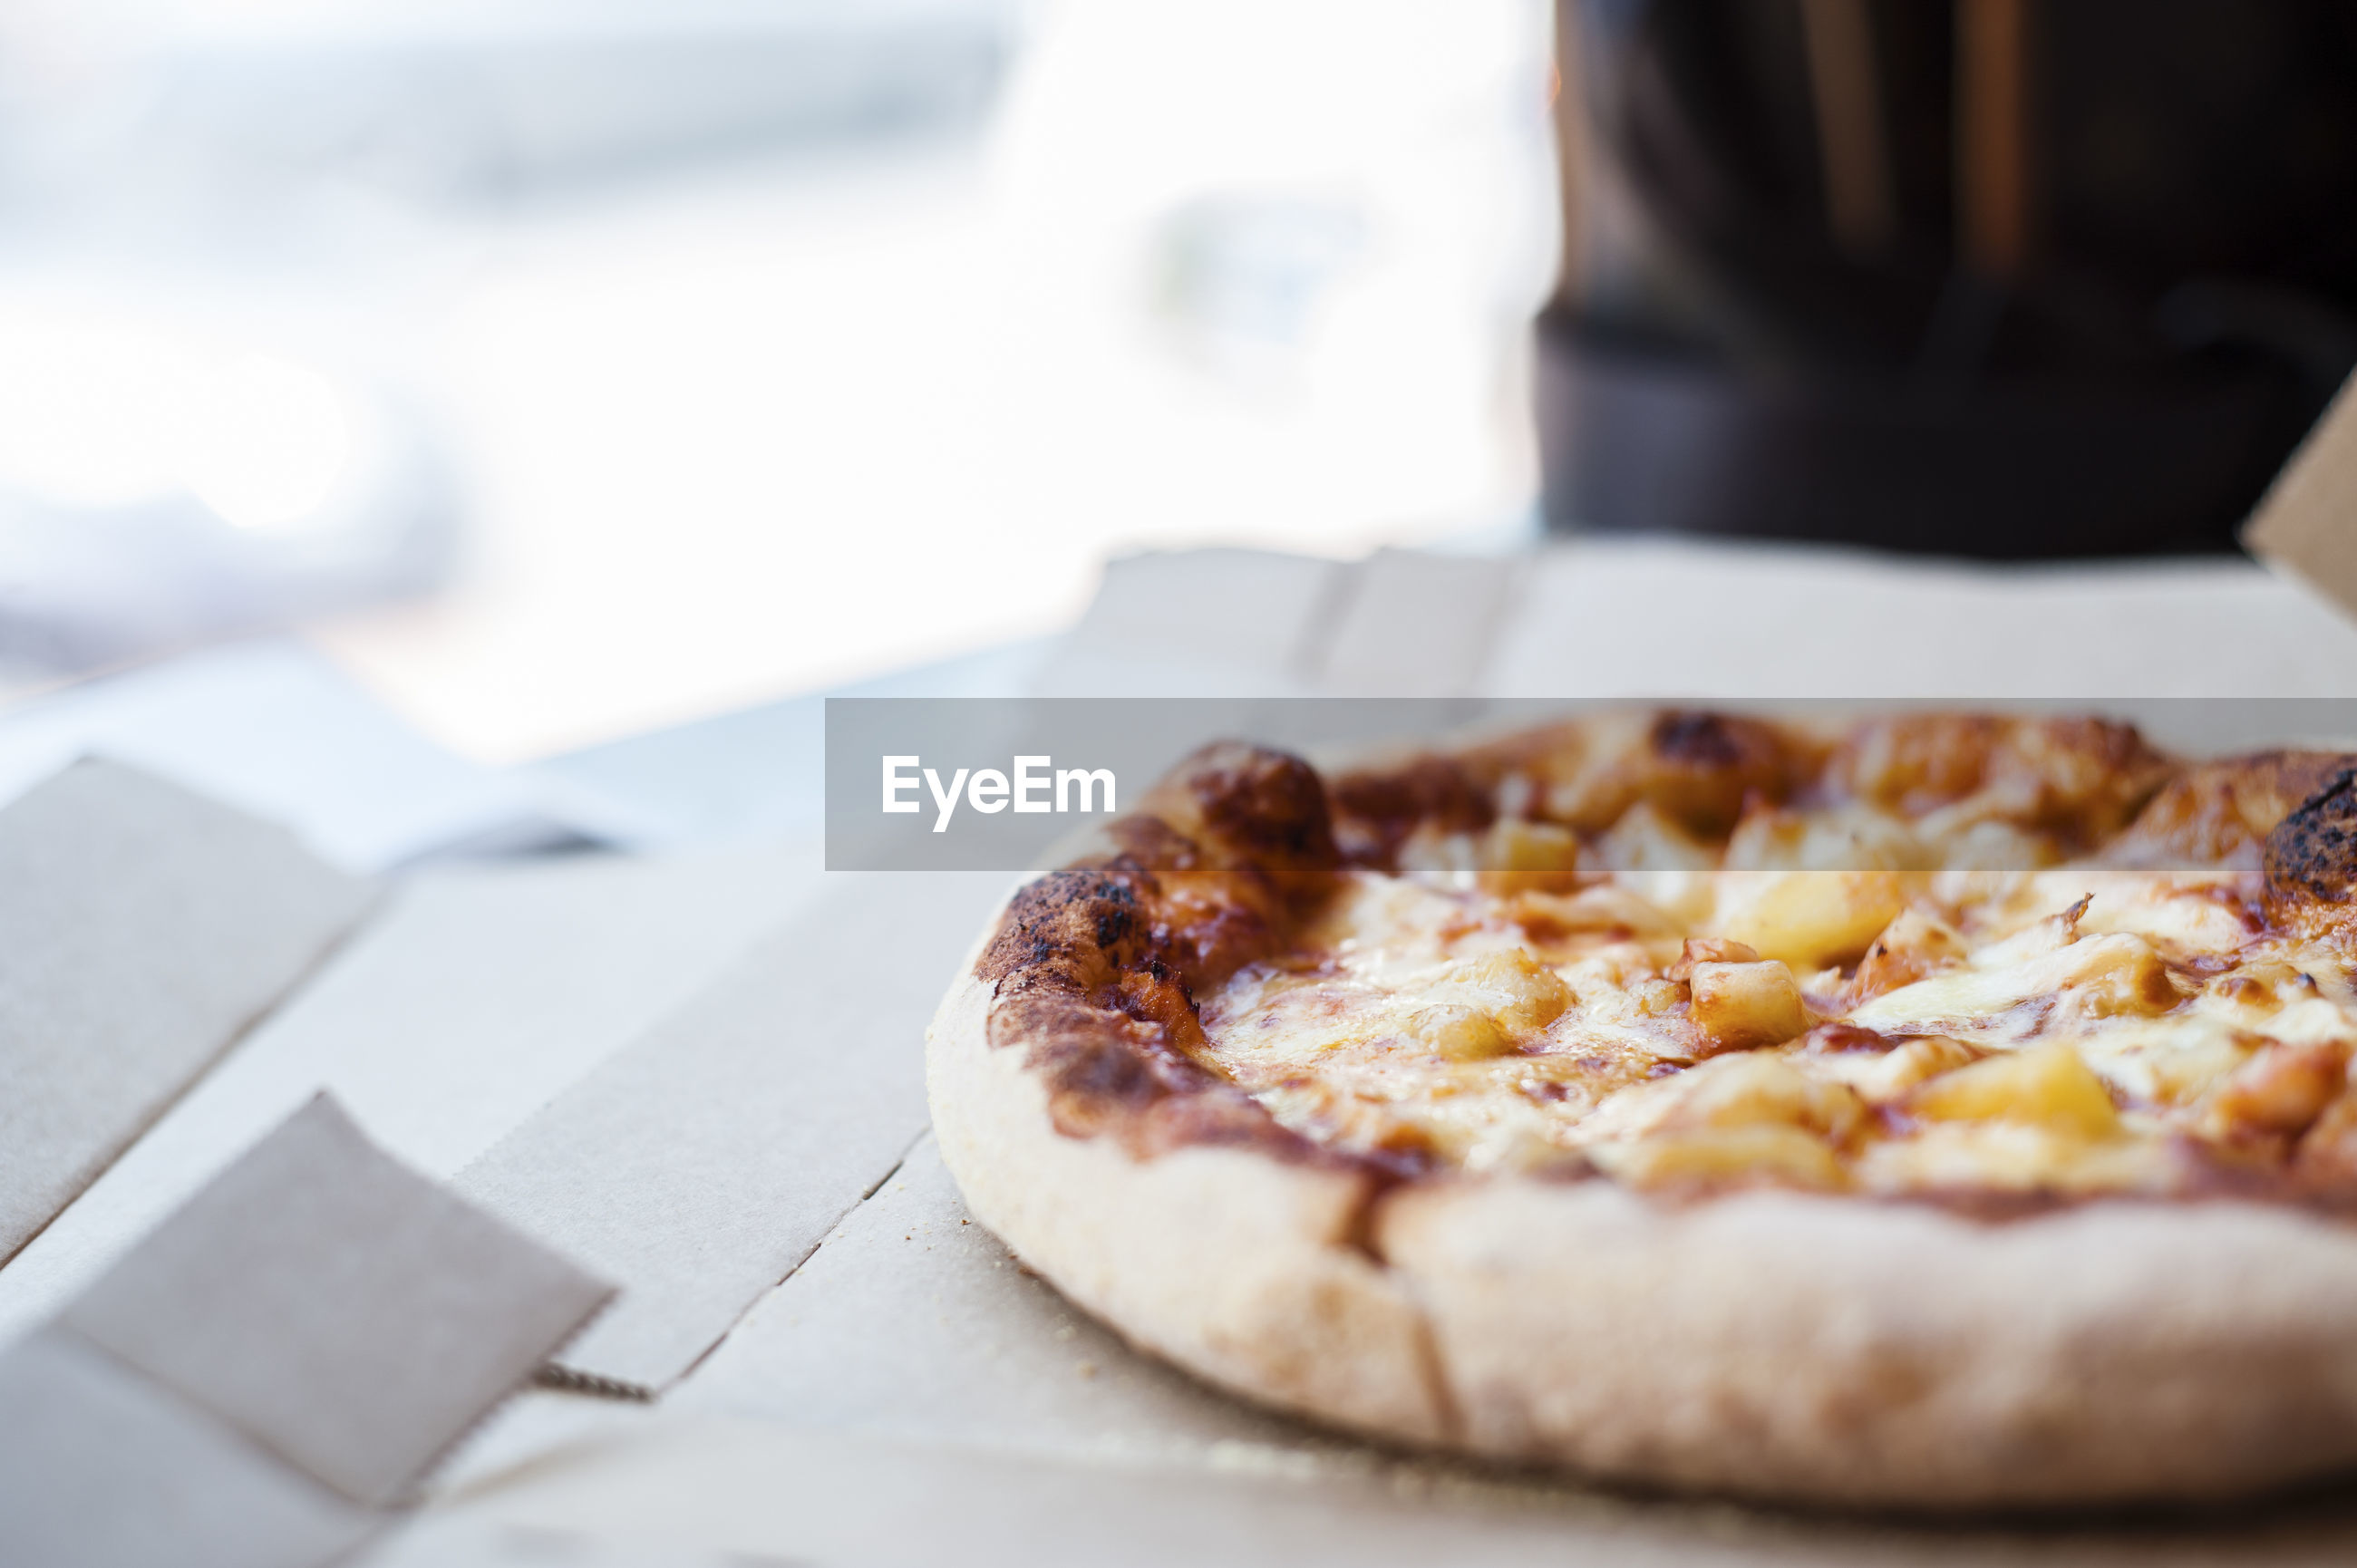 Cropped image of pizza in box against person